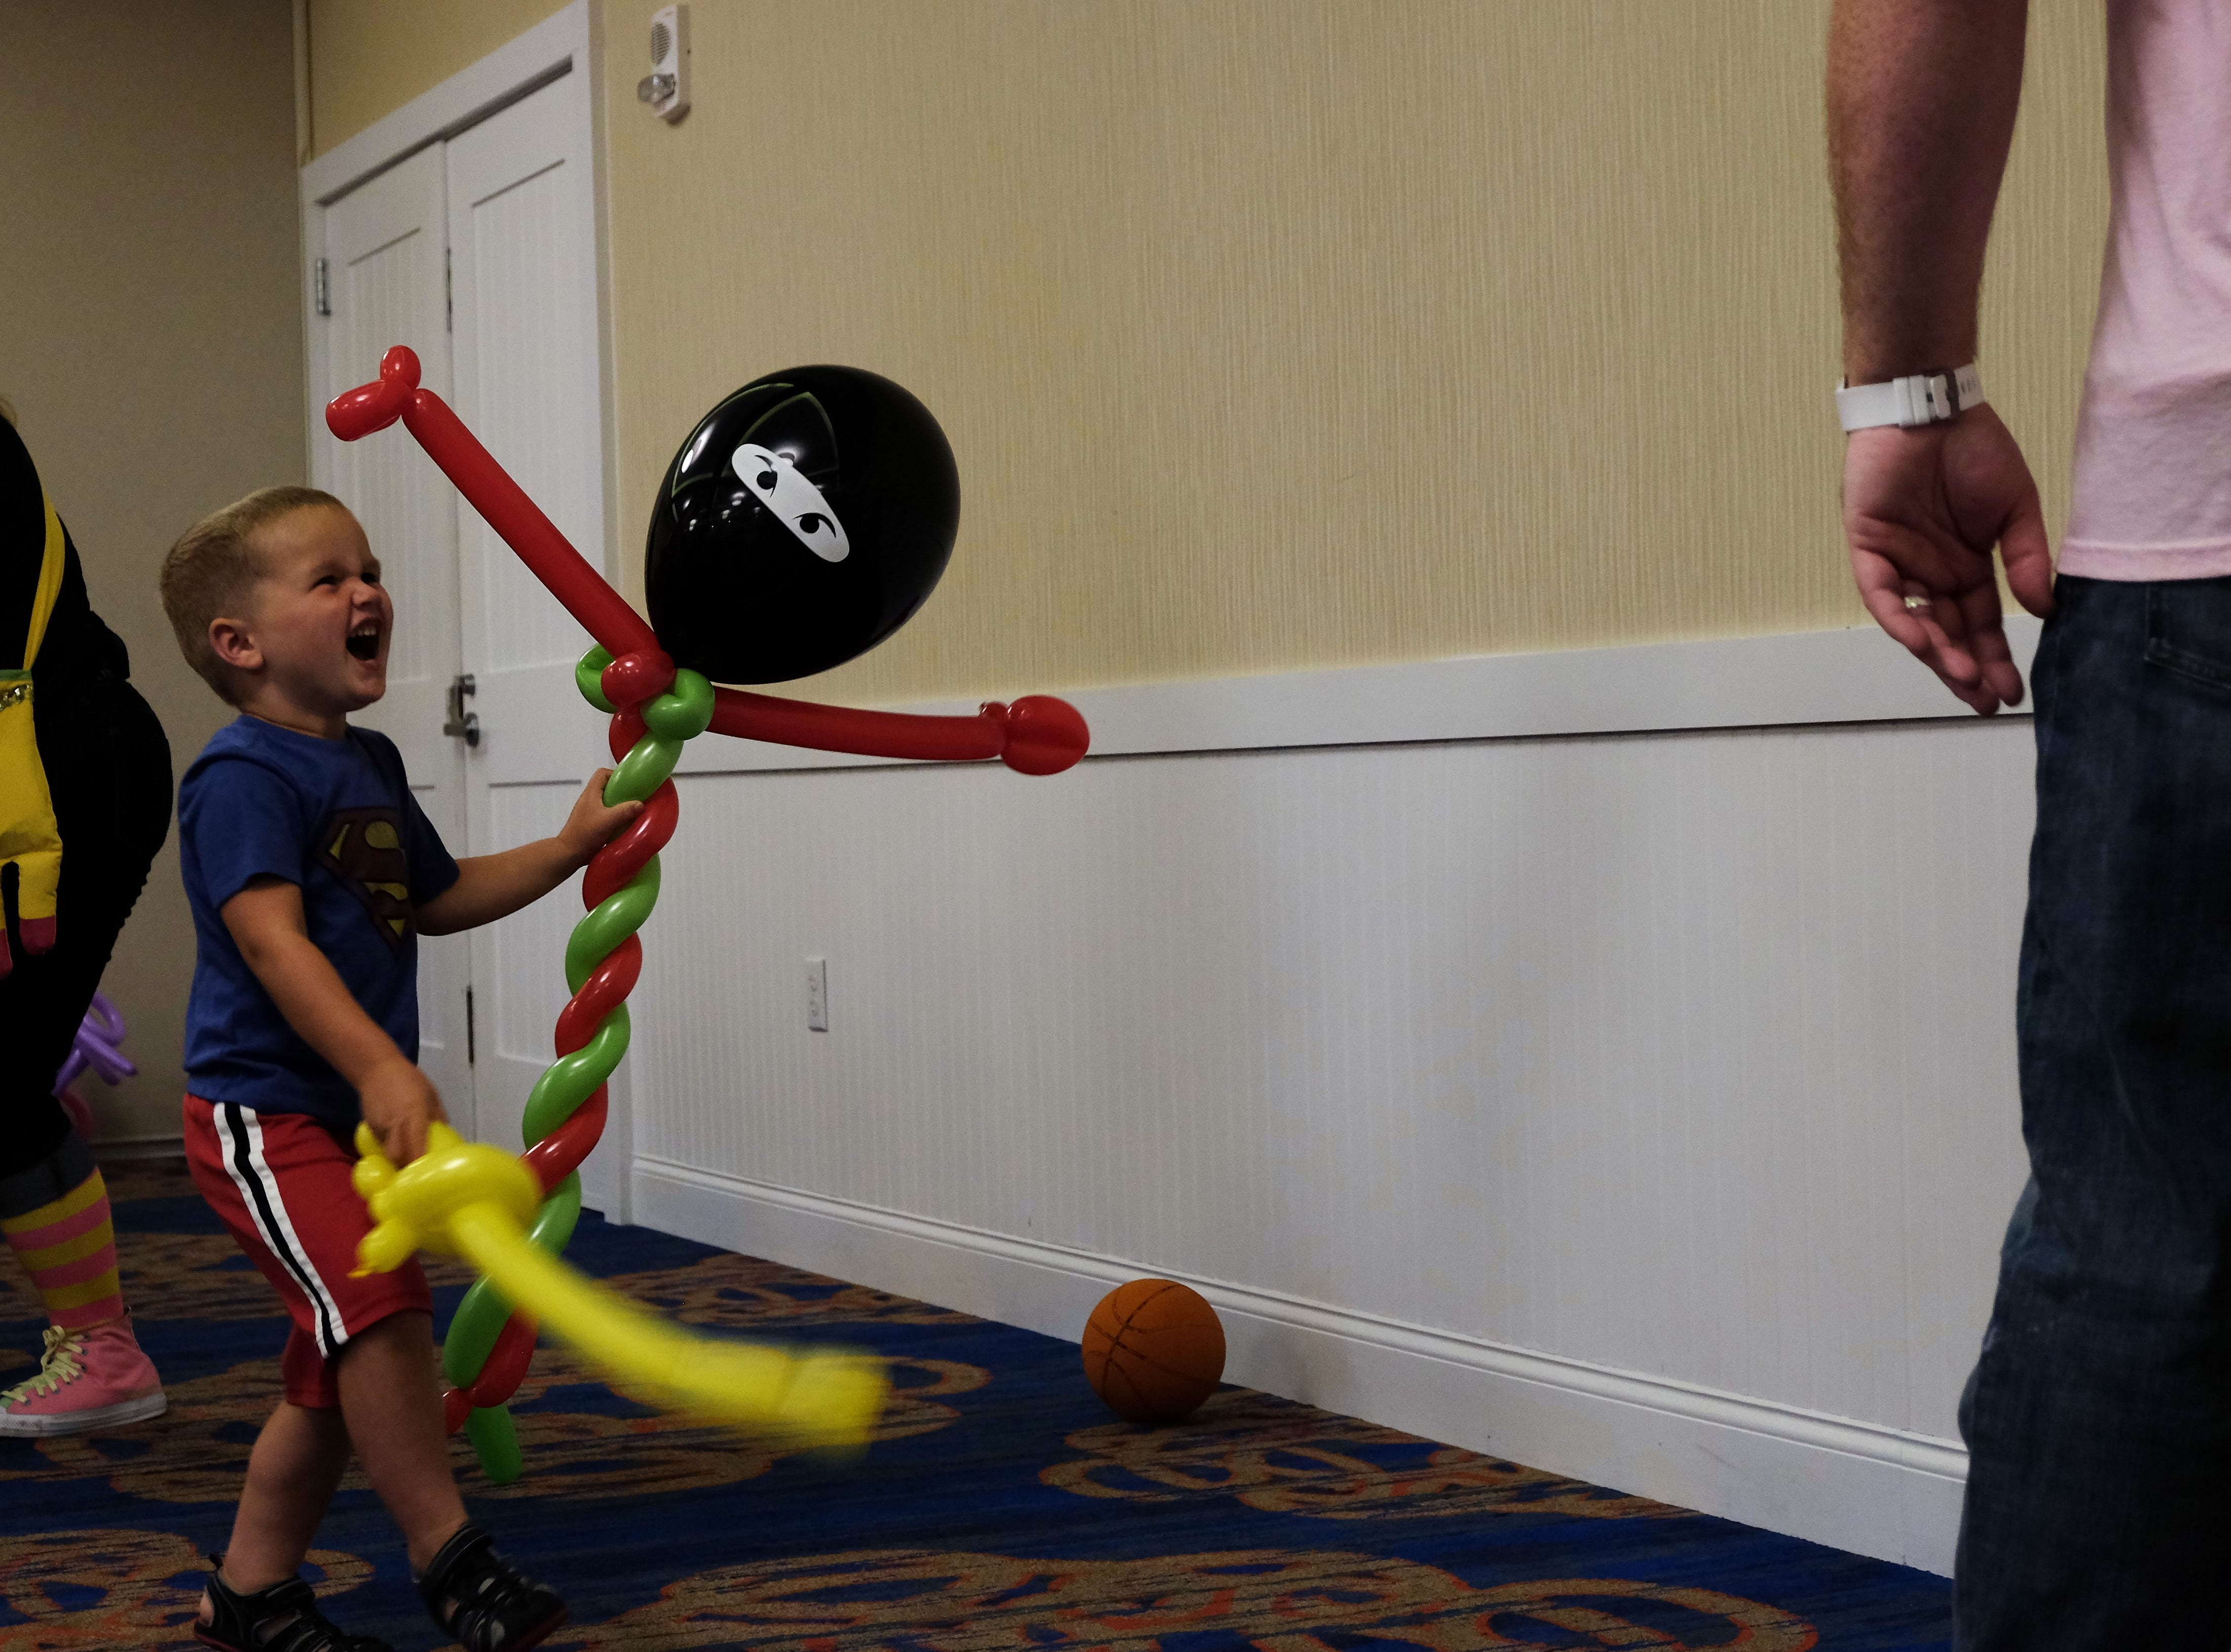 A boy uses ninja powers to fight off the bad guys on Aug. 15 at Bethany Beach Ocean Suites, where Renate McIntosh showed off her balloon skills.